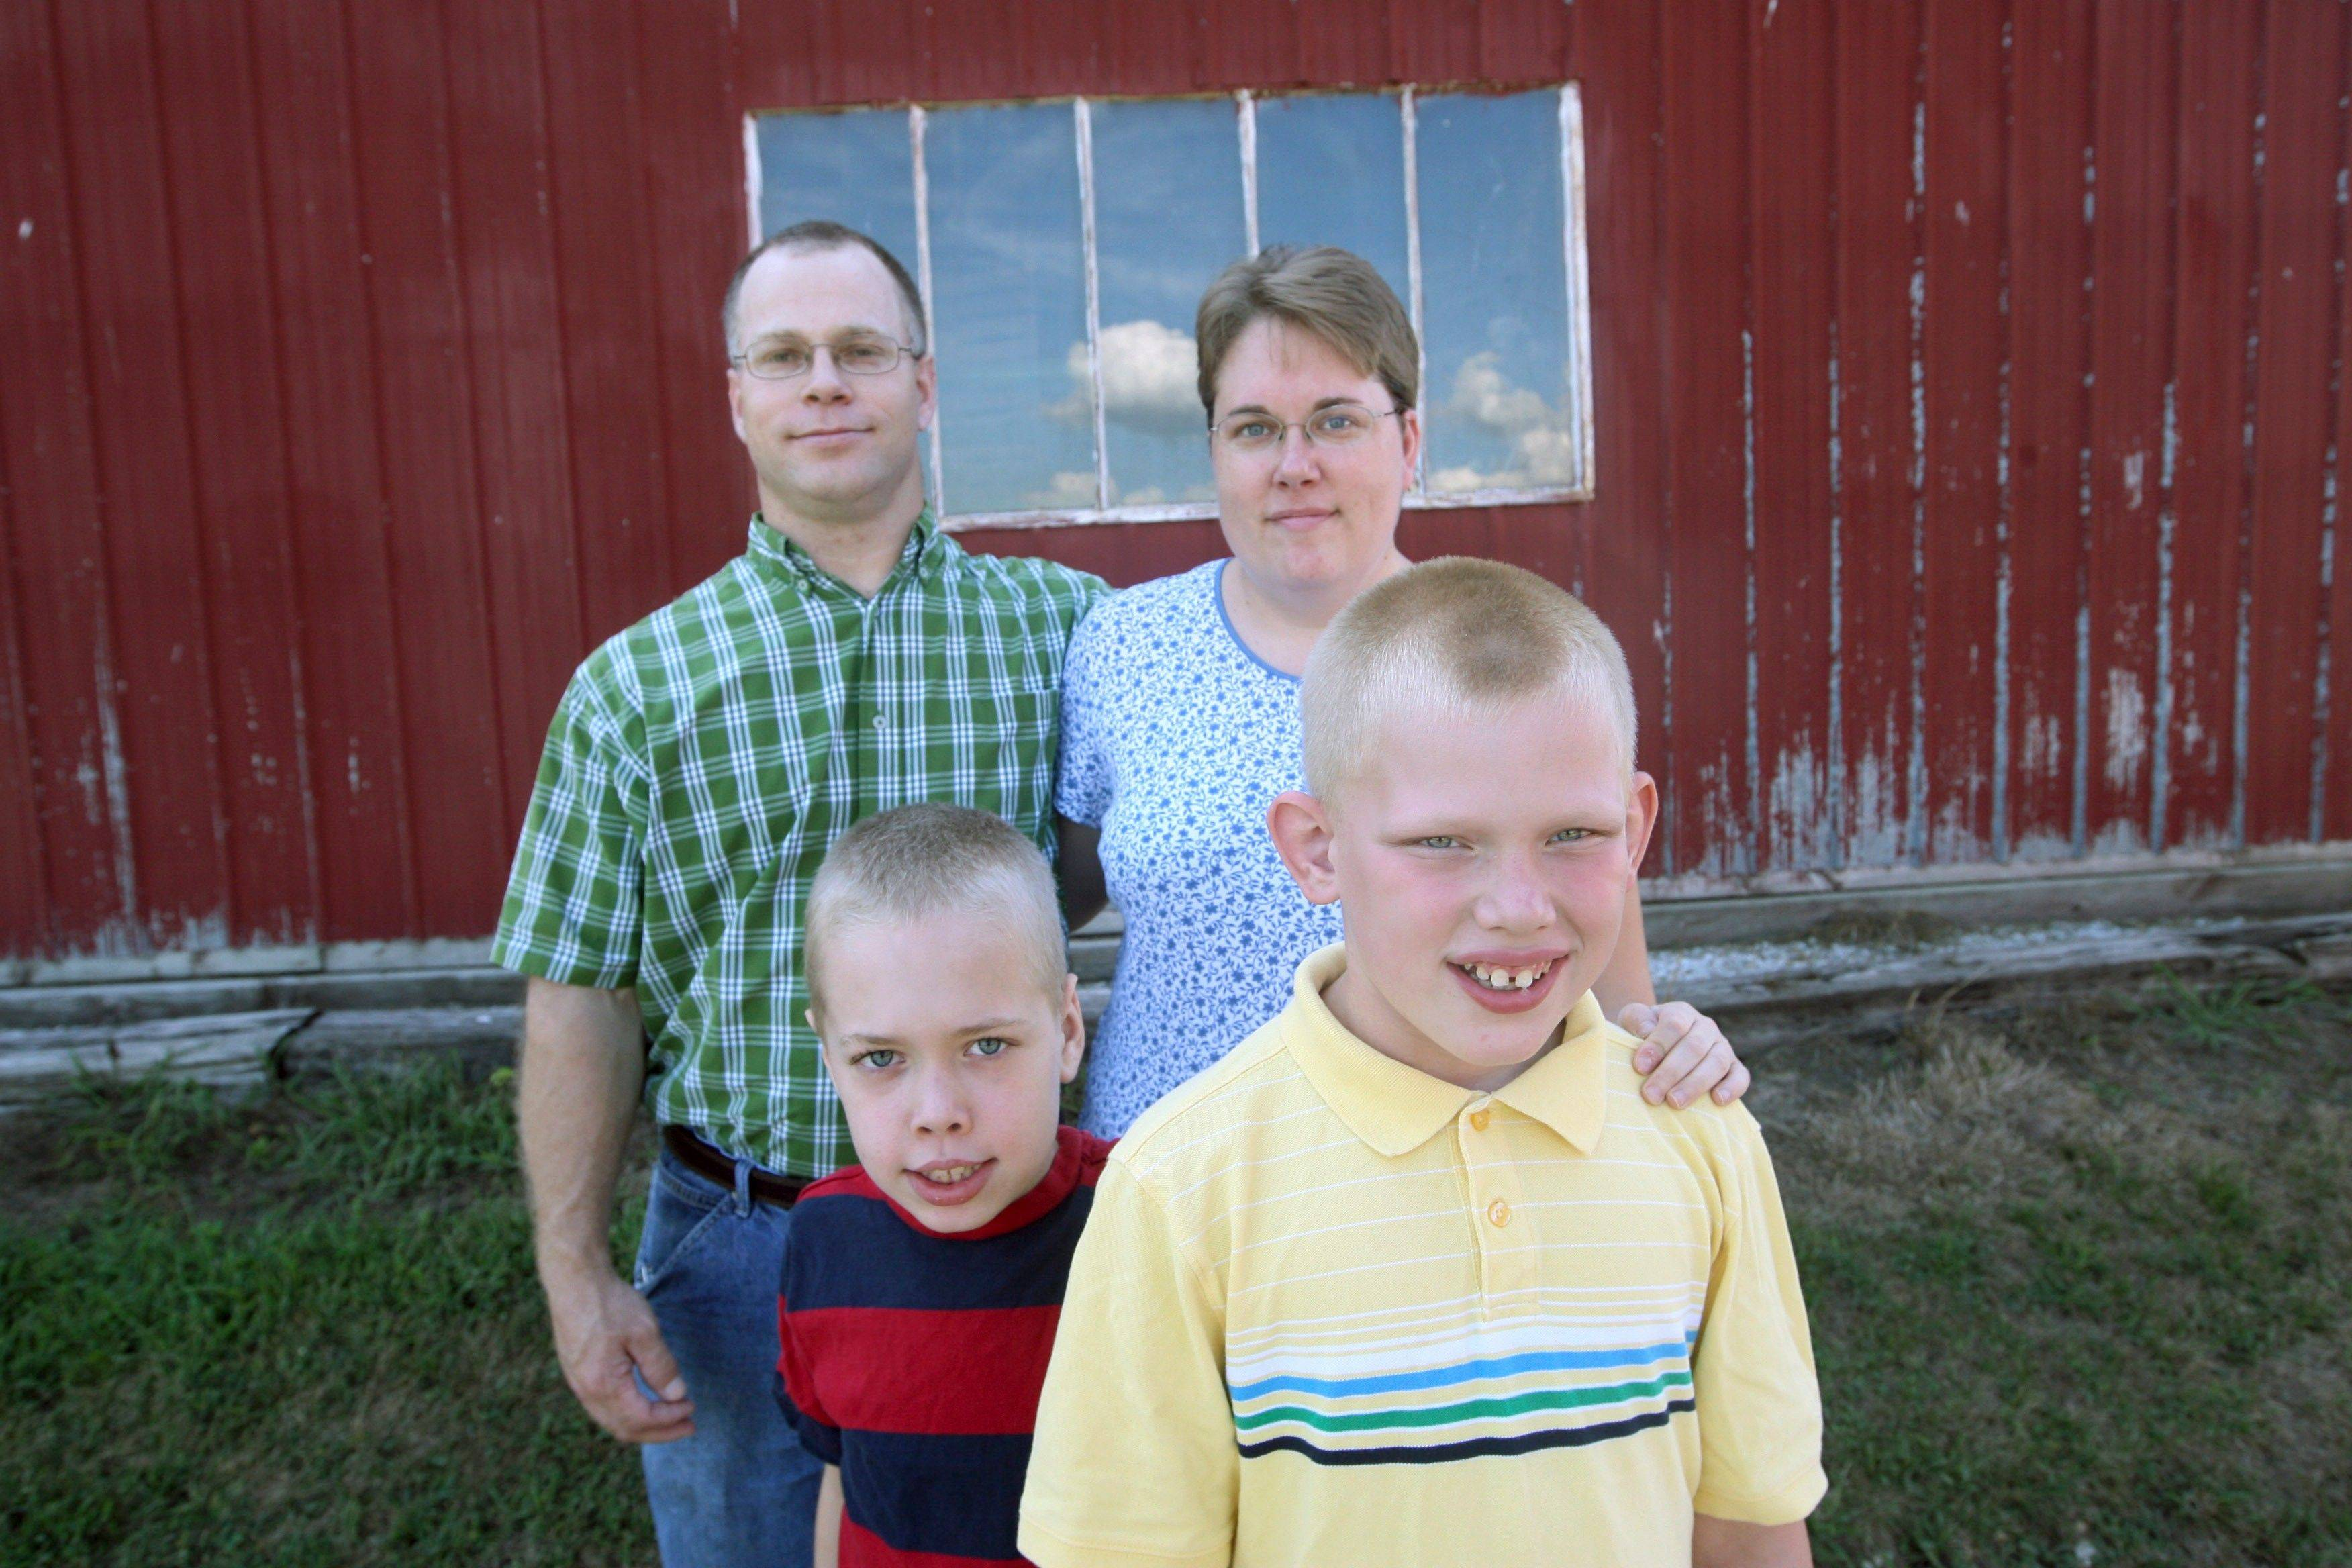 Tony and Jesica Huber pose with their sons Ethan, 8, left, and Andrew, 11, at their home near Plainville, Ill. Andrew, was diagnosed with Fragile X Syndrome, which after years of research is now considered the leading cause of inherited mental impairment and the leading known cause of autism.